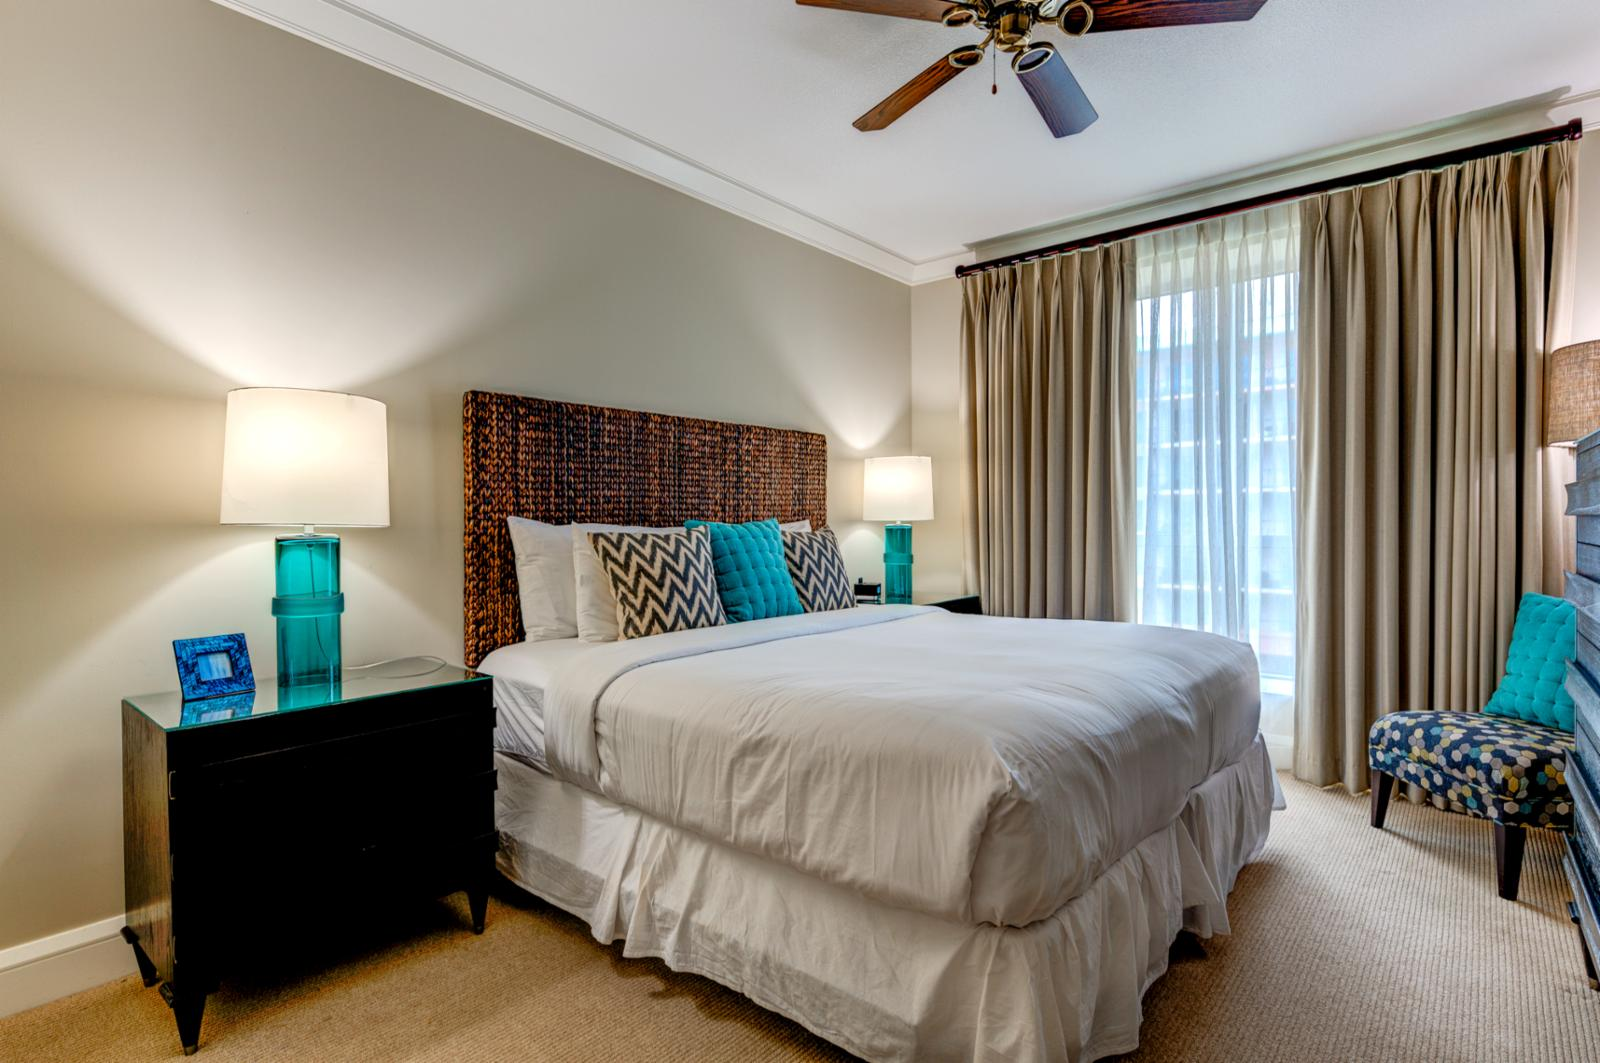 Ocean blue accents surrounding this comfortable and relaxing bed